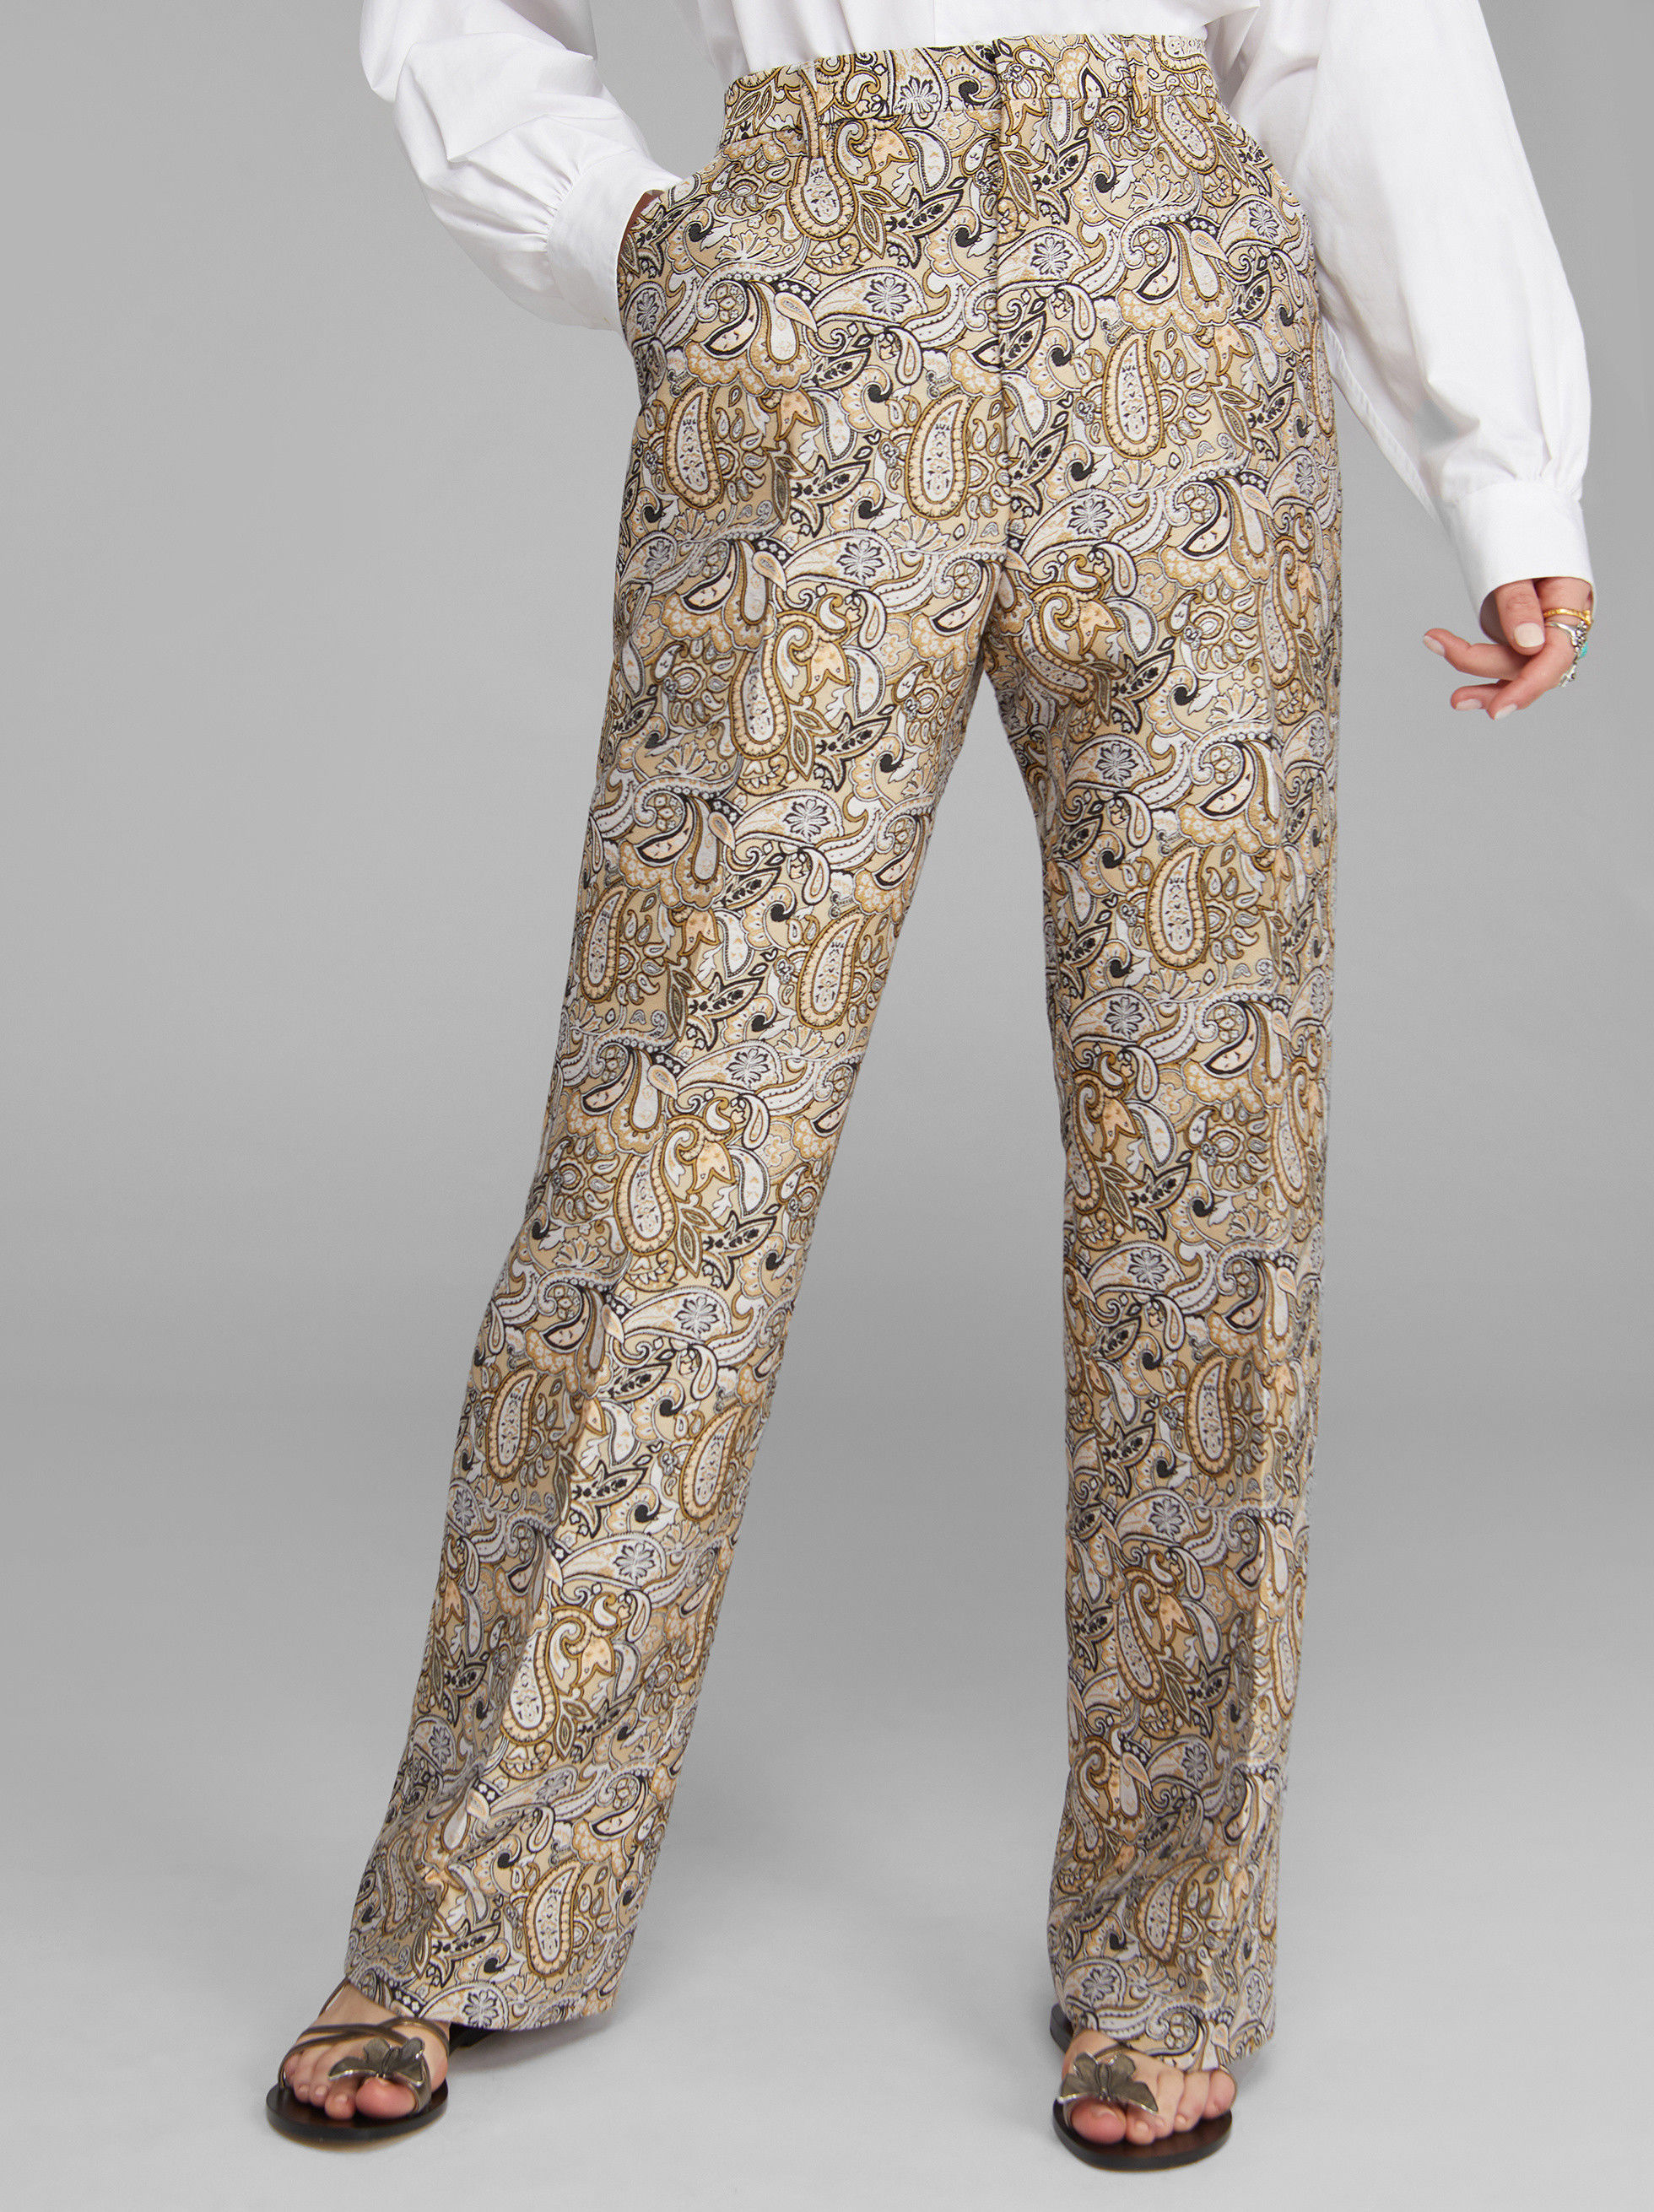 FLARED JACQUARD TROUSERS WITH PAISLEY PATTERNS